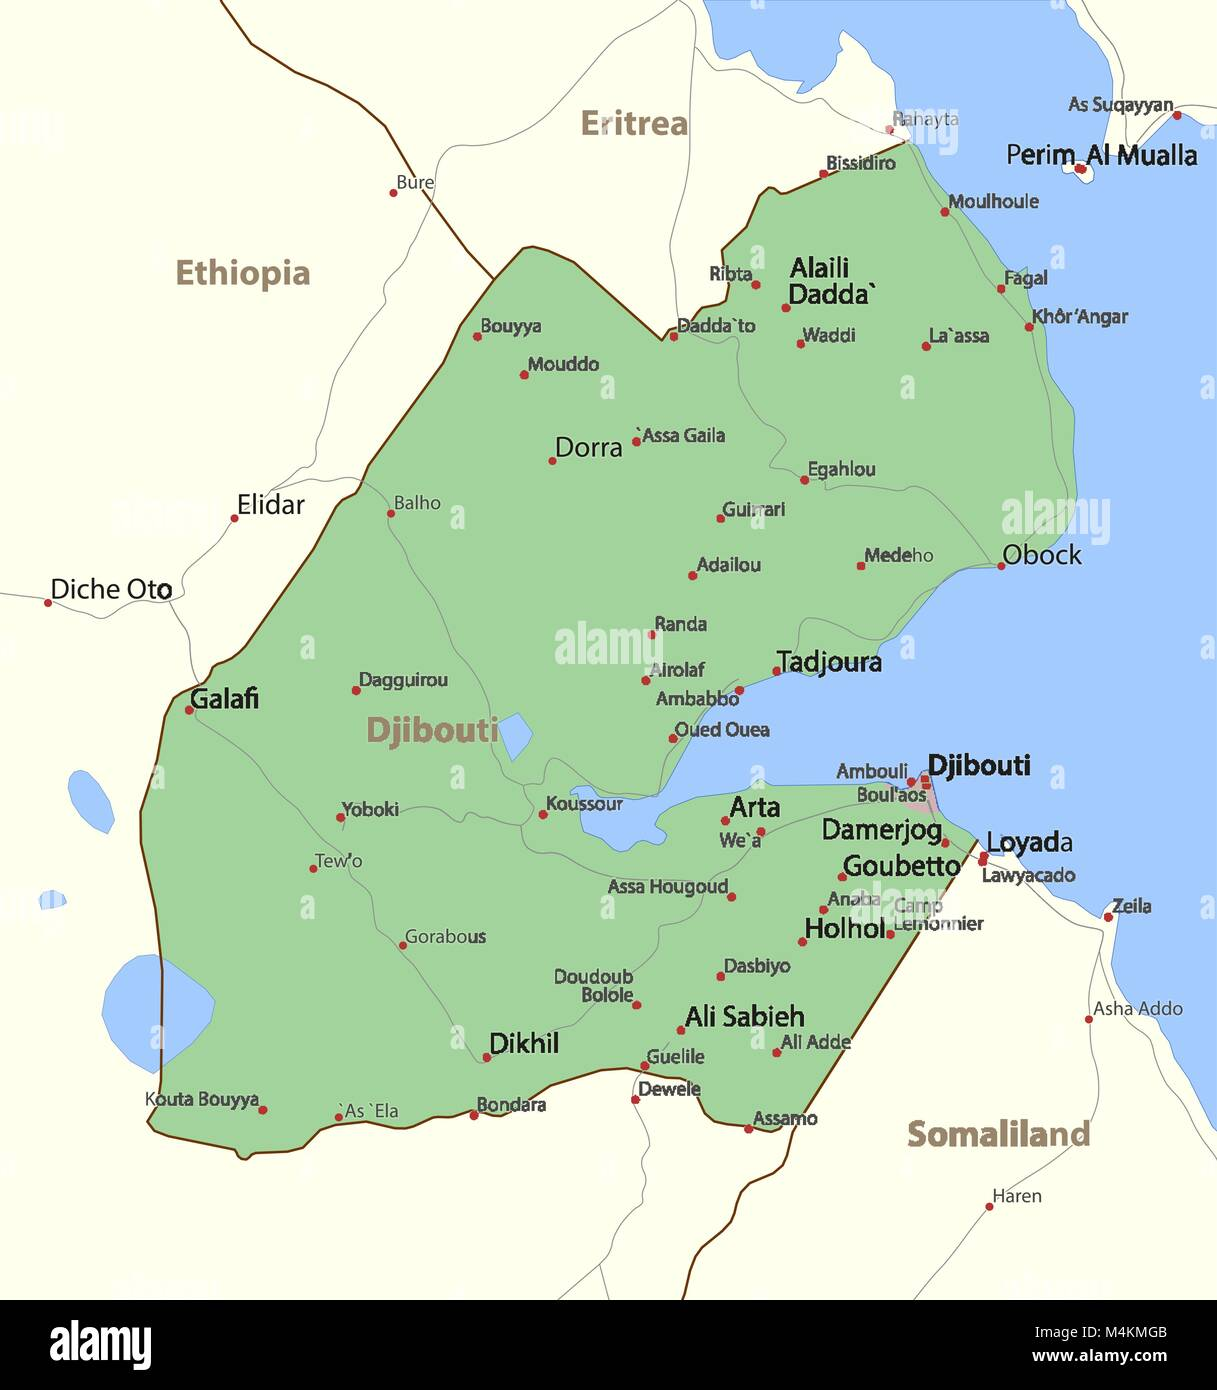 Outline Map Country Djibouti Stock Photos & Outline Map Country ...